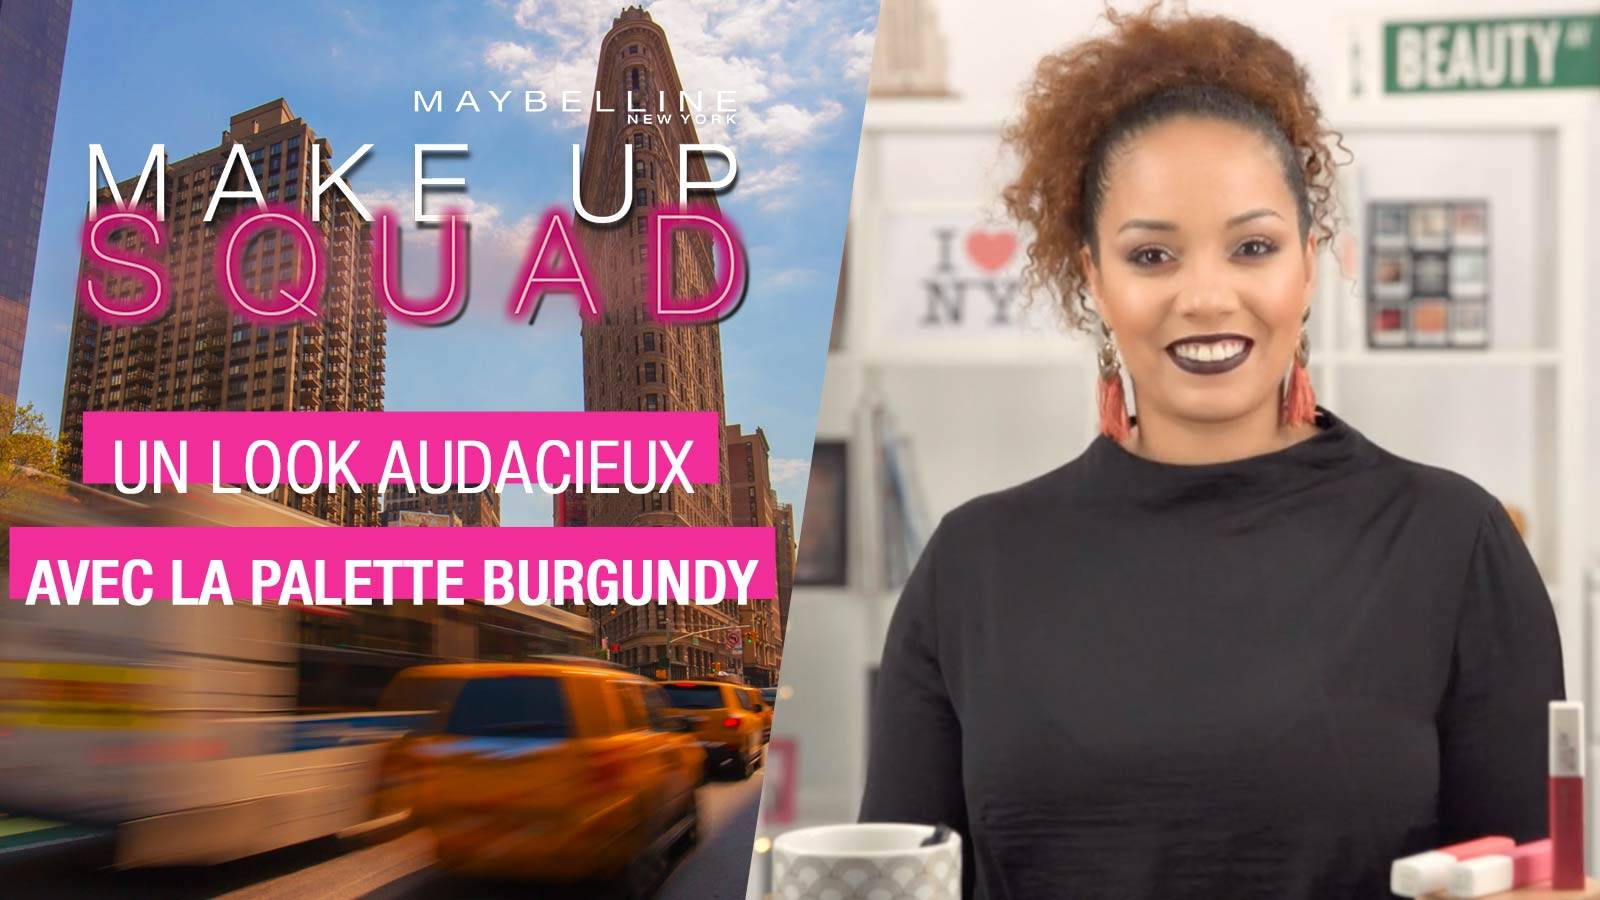 maybelline-makeup-squad-look-audacieux-burgundy-amivi-video-16x9